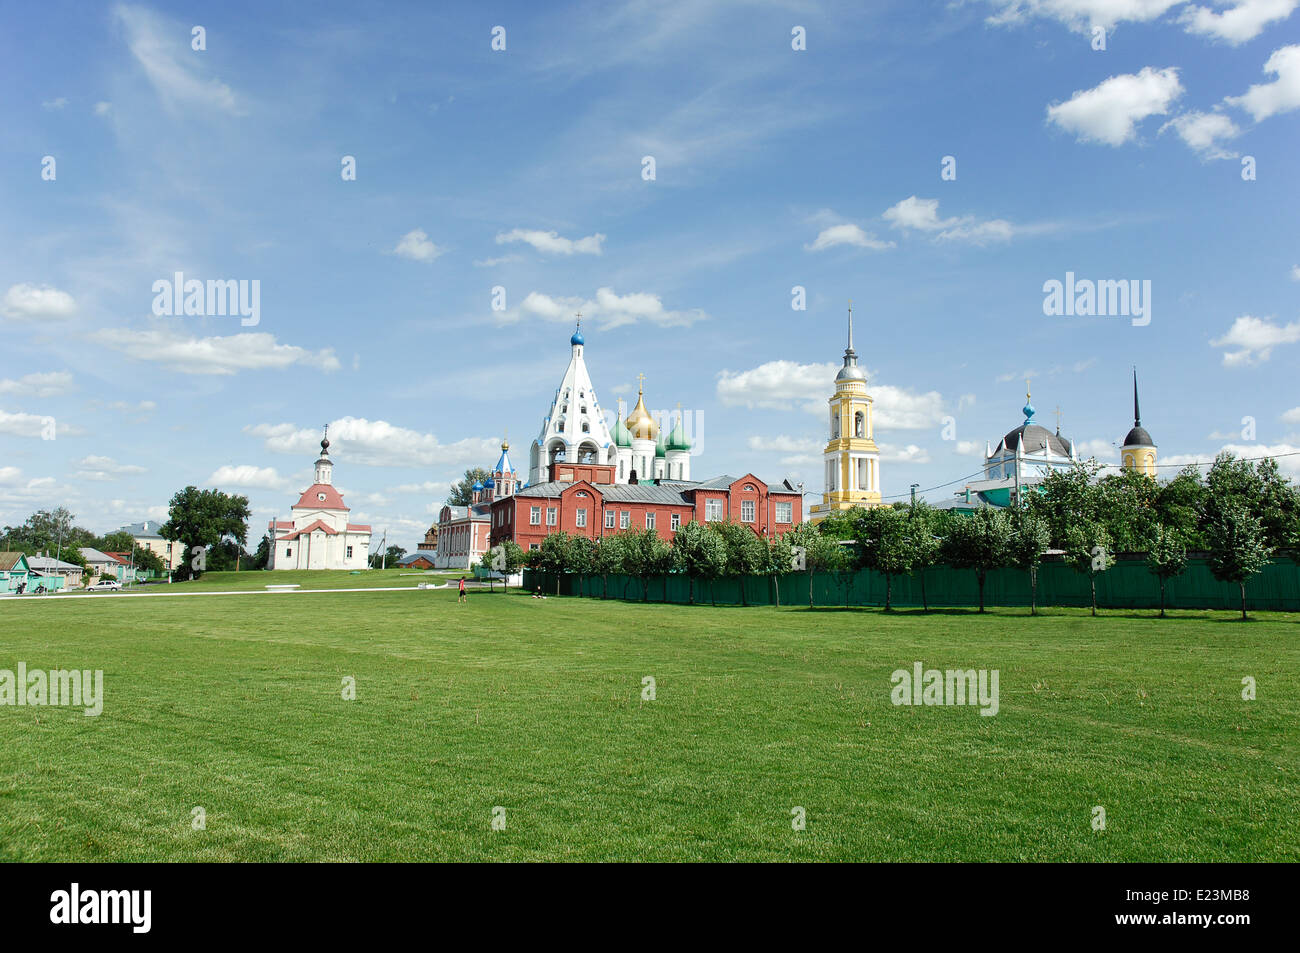 Historical center of the town Kolomna. Big field and a lot of churches shows the marvelous orthodox power of Russia Stock Photo